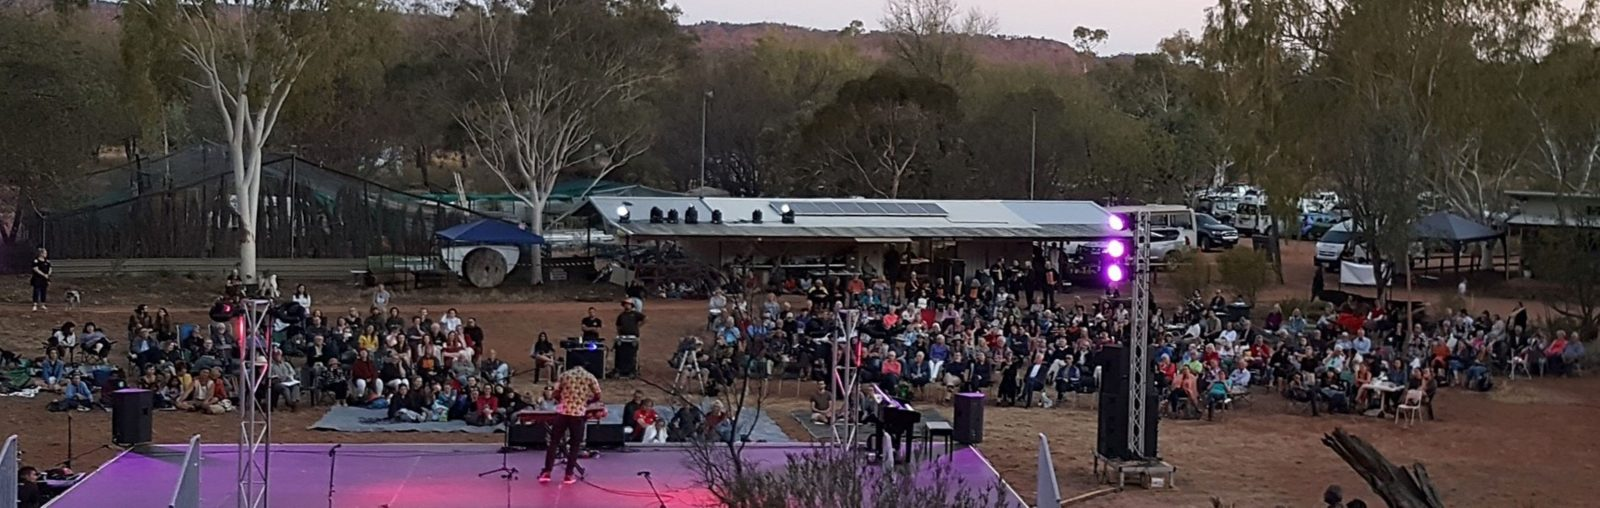 Desert Song Festival, Alice Springs, Central Australia, Northern Territory, Arts, Music, Events